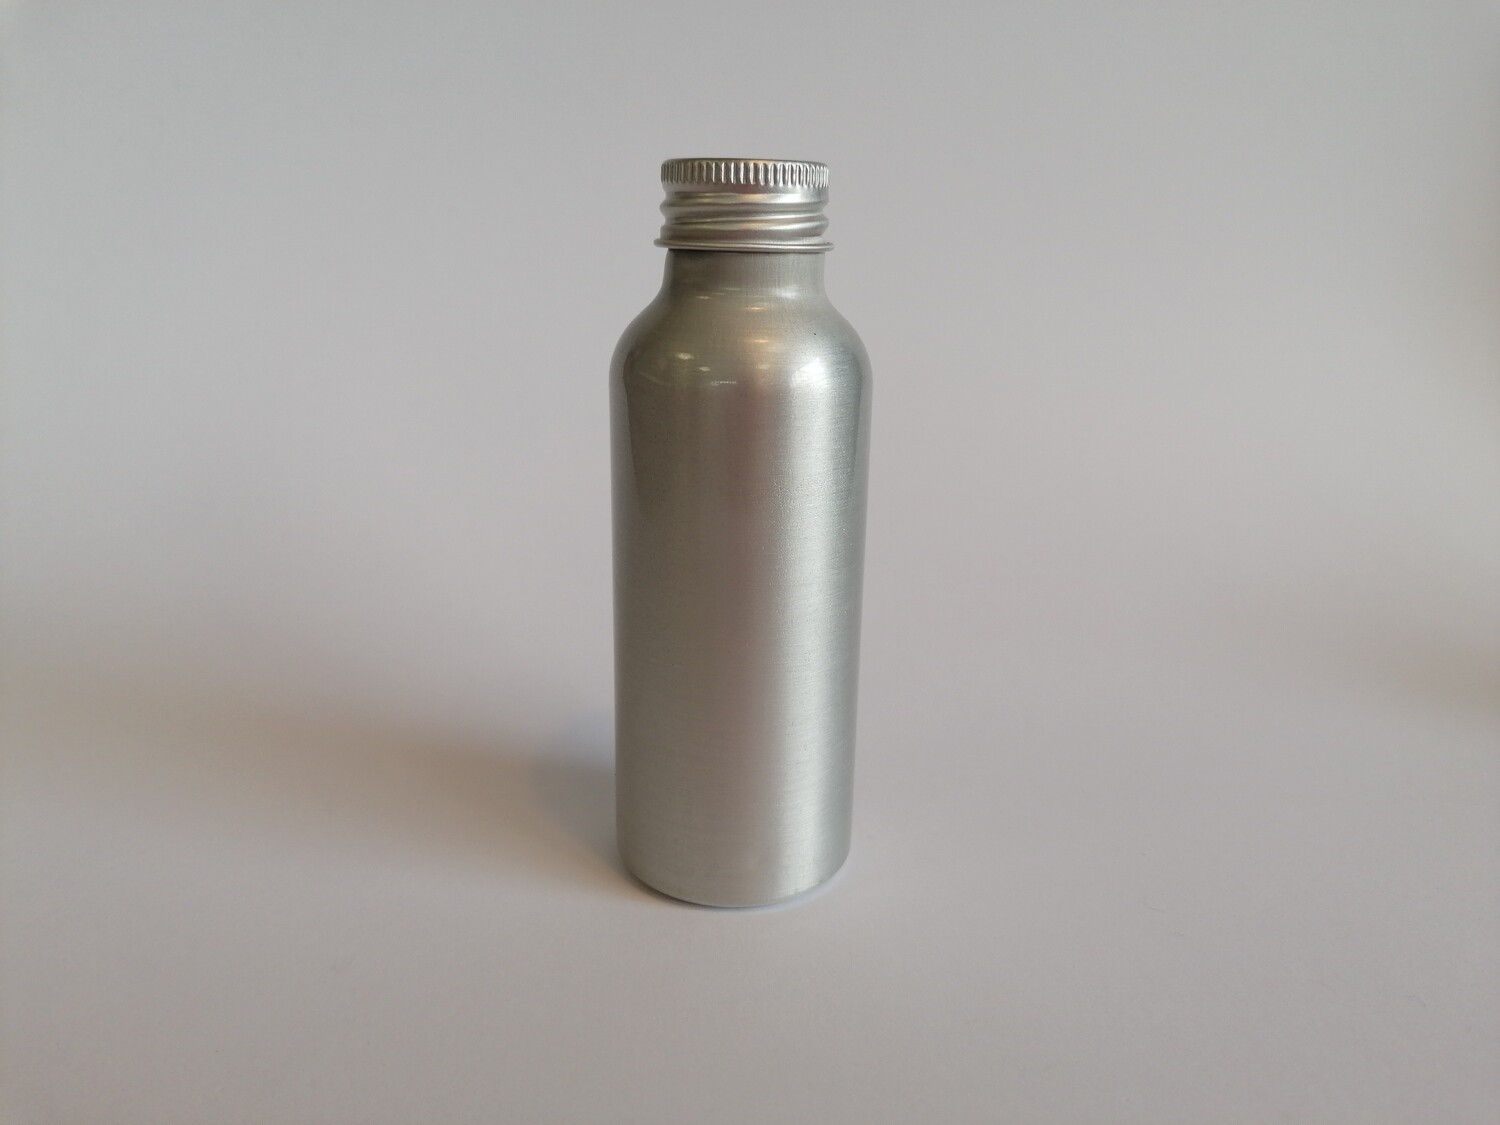 100ml Aluminium Screw Top Bottle